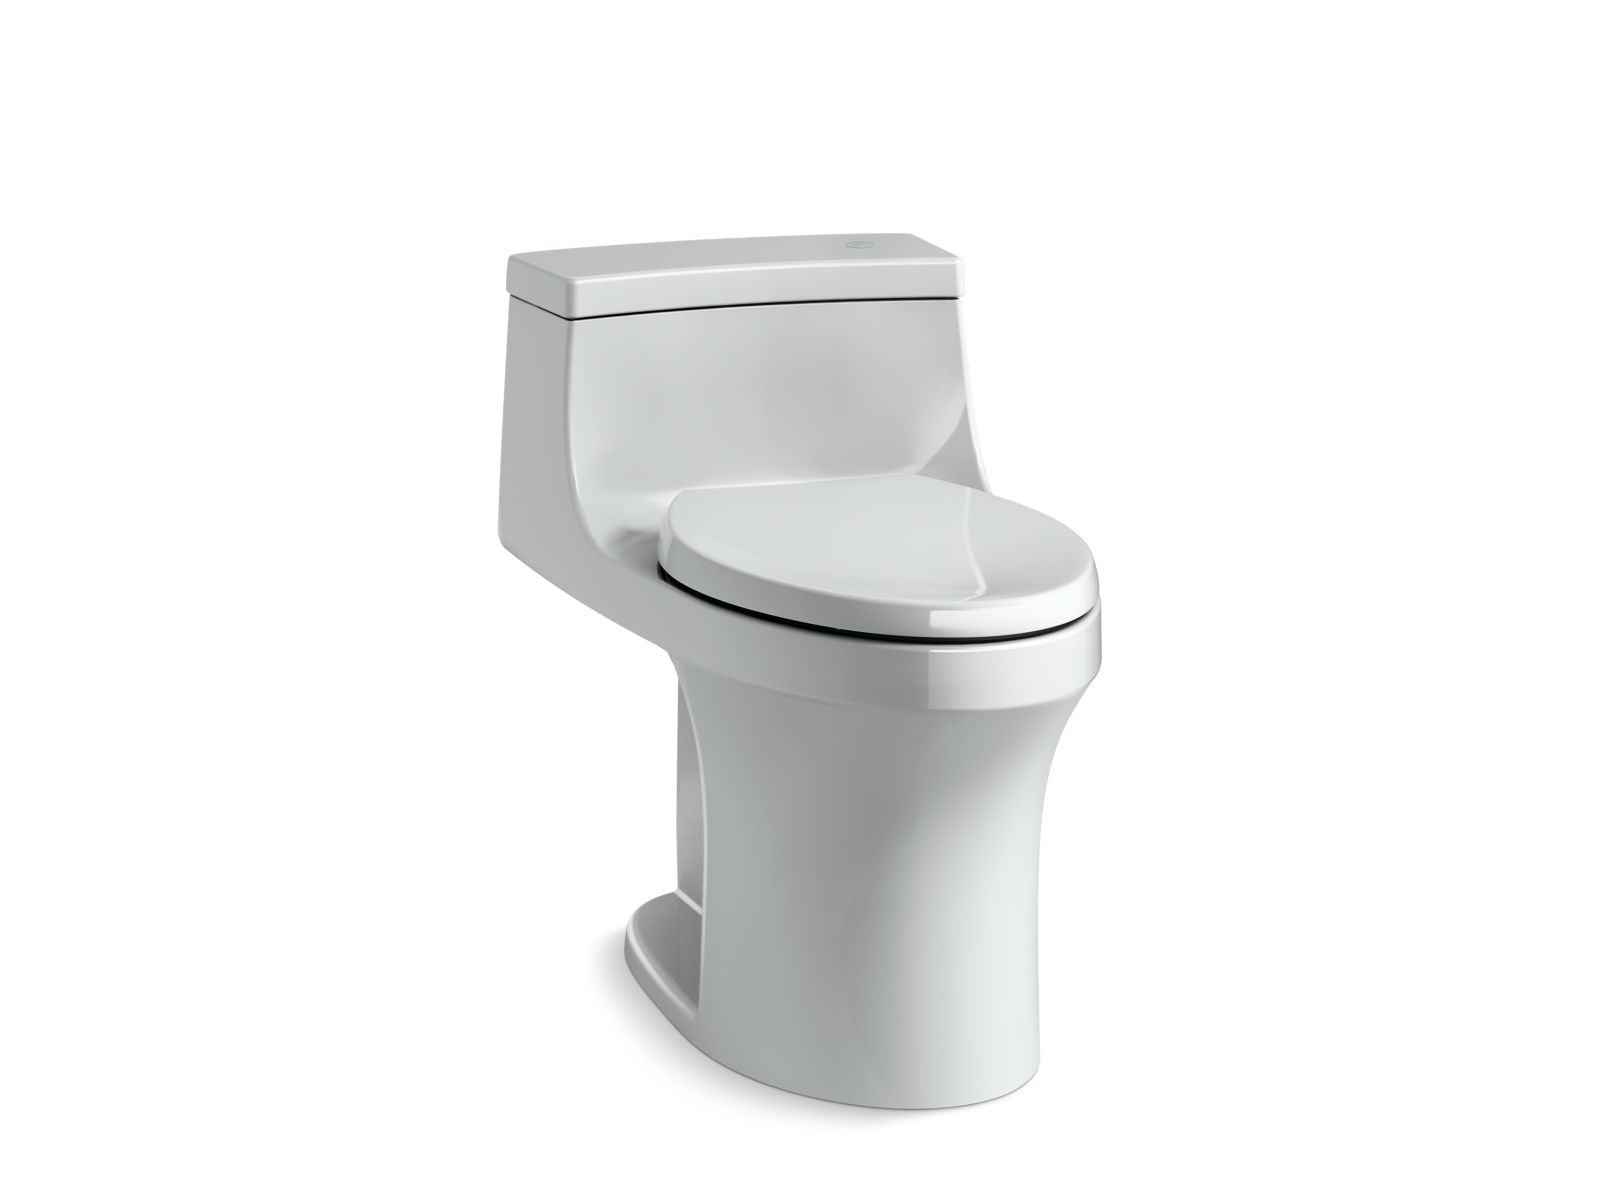 Kohler San Souci™ K-4000-95 Touchless Comfort Height® one-piece compact elongated 1.28 gpf toilet with AquaPiston® flushing technology Ice Grey